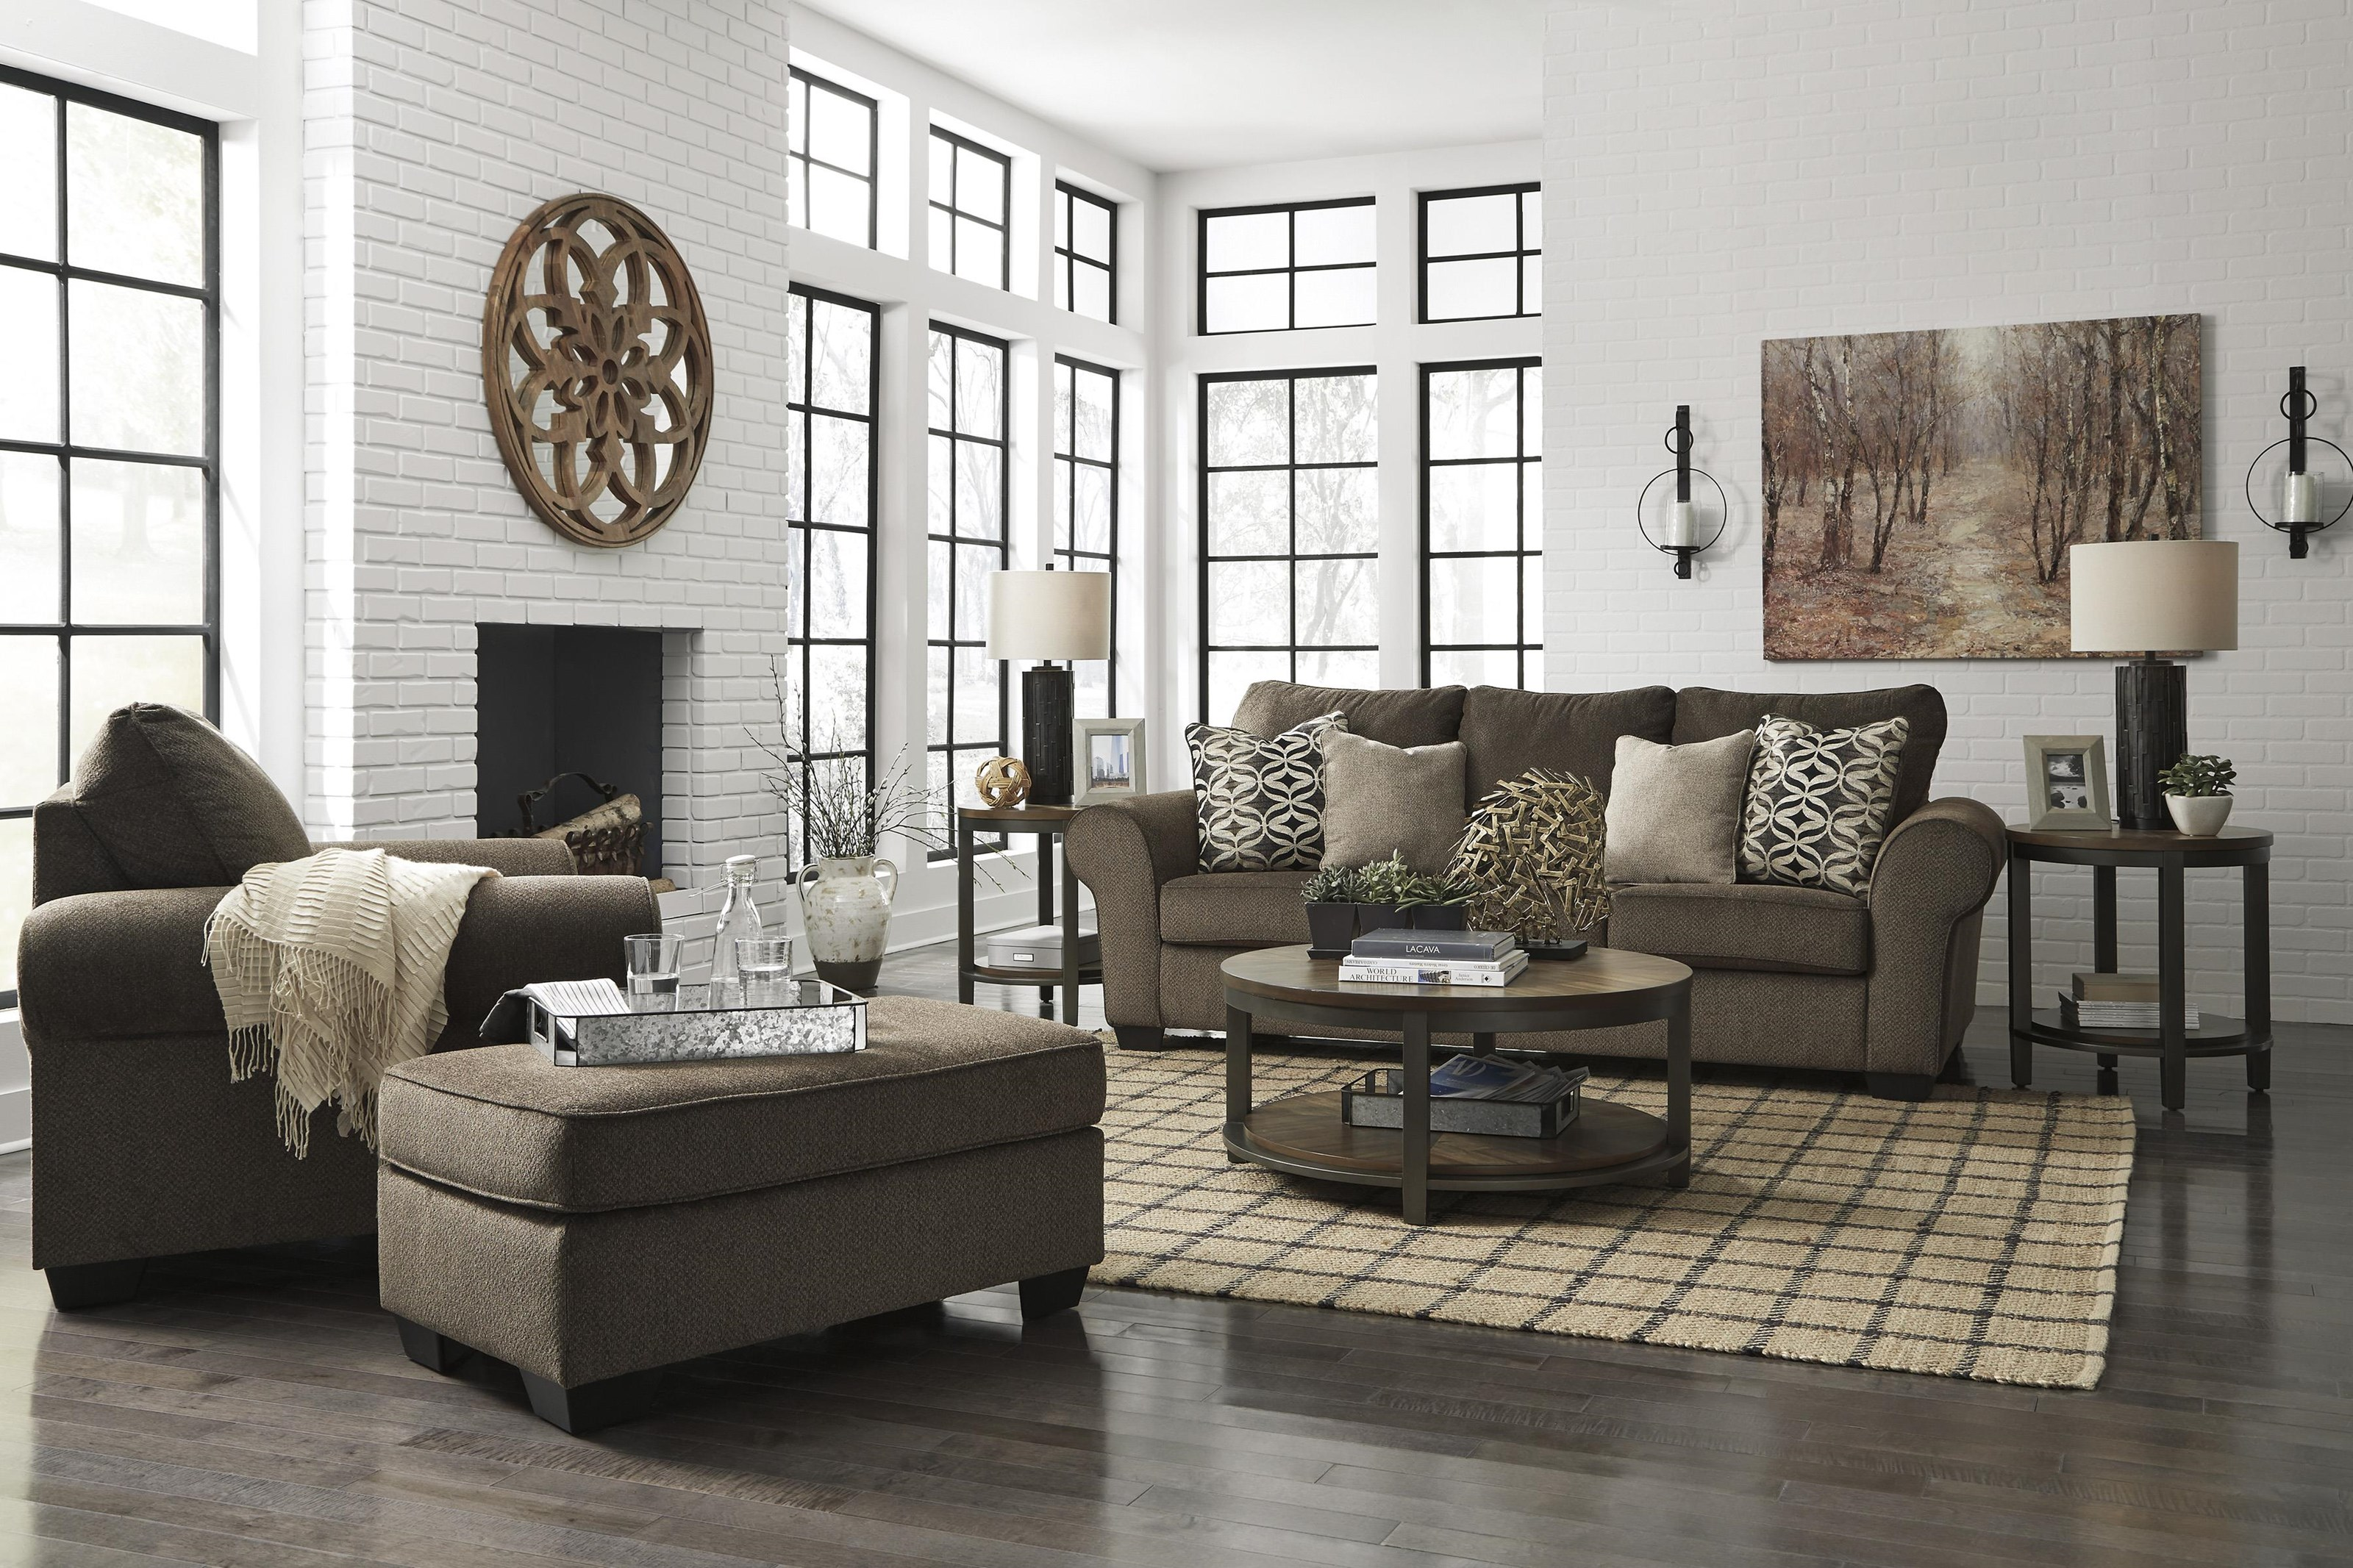 Nesso Sofa, Chair and Ottoman Set by Benchcraft at Sam Levitz Outlet